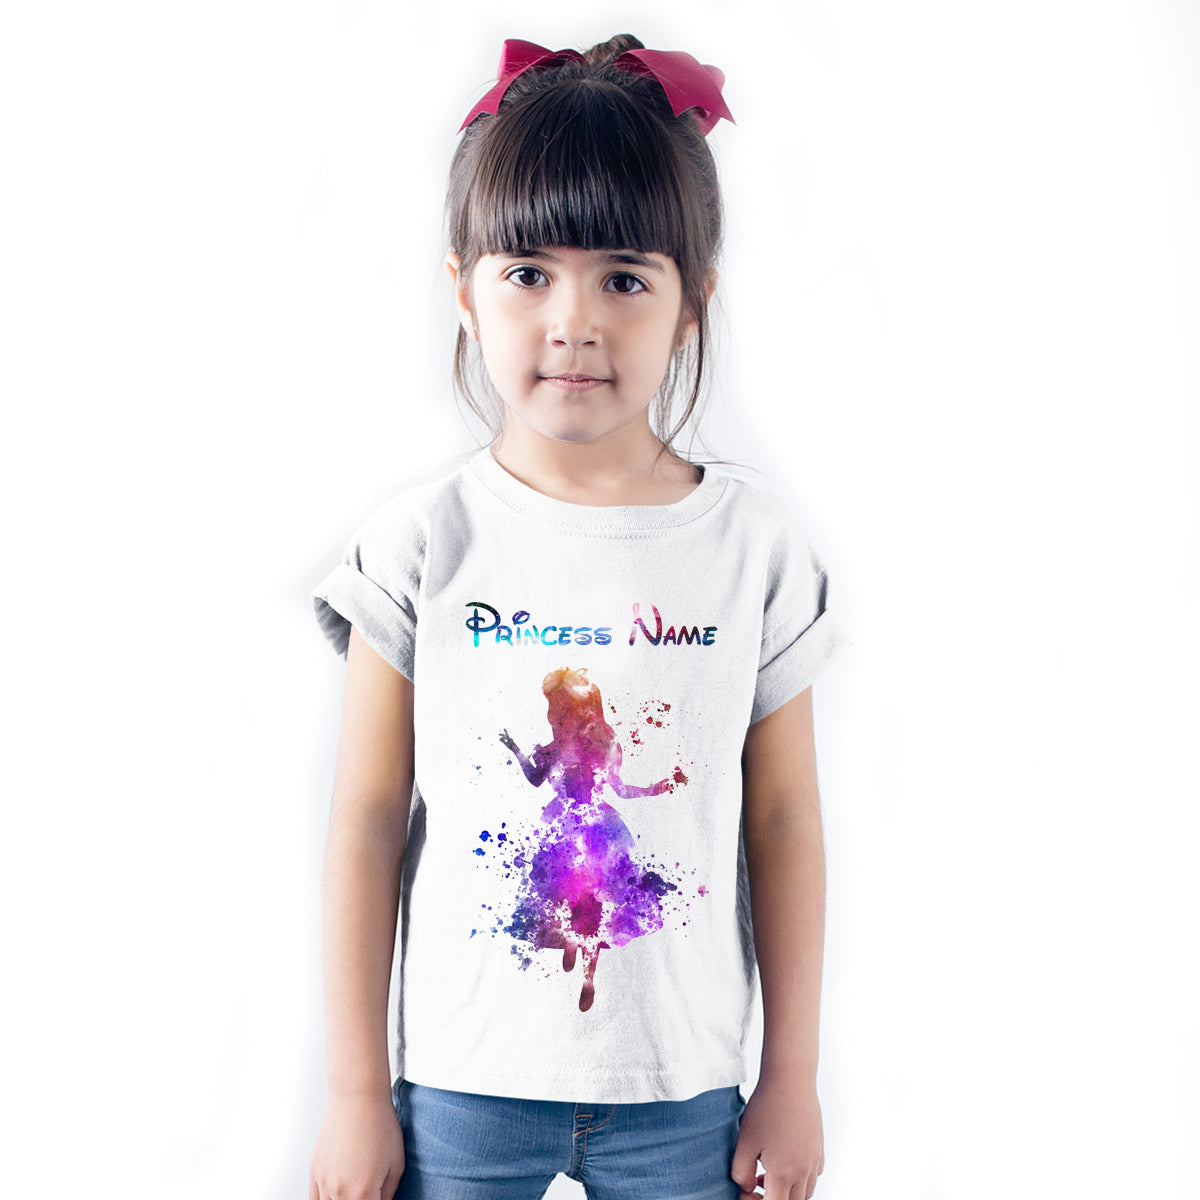 Sprinklecart Princess Personalized Name Printed Kids Poly-Cotton T Shirt Wear (White)